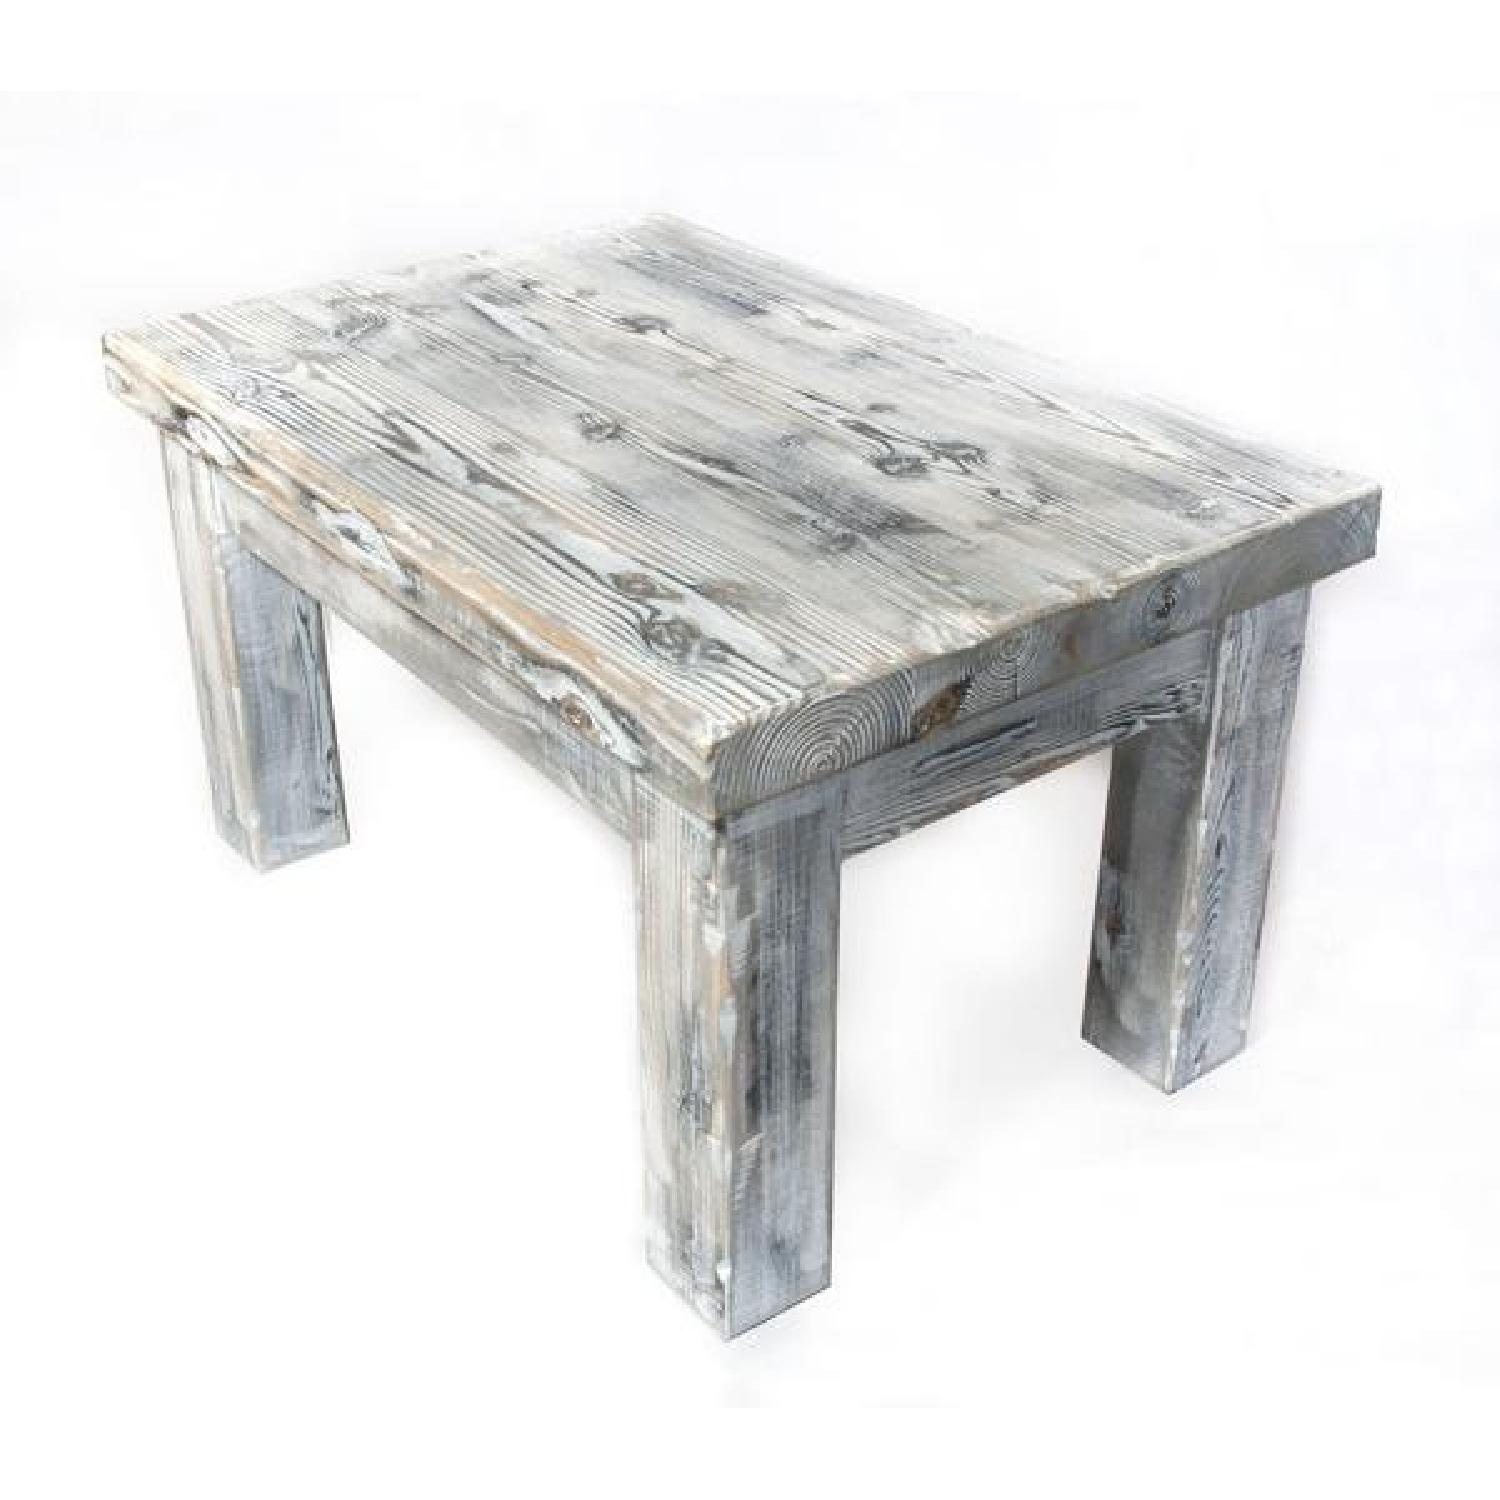 Weathered Distressed Pine Coffee Table